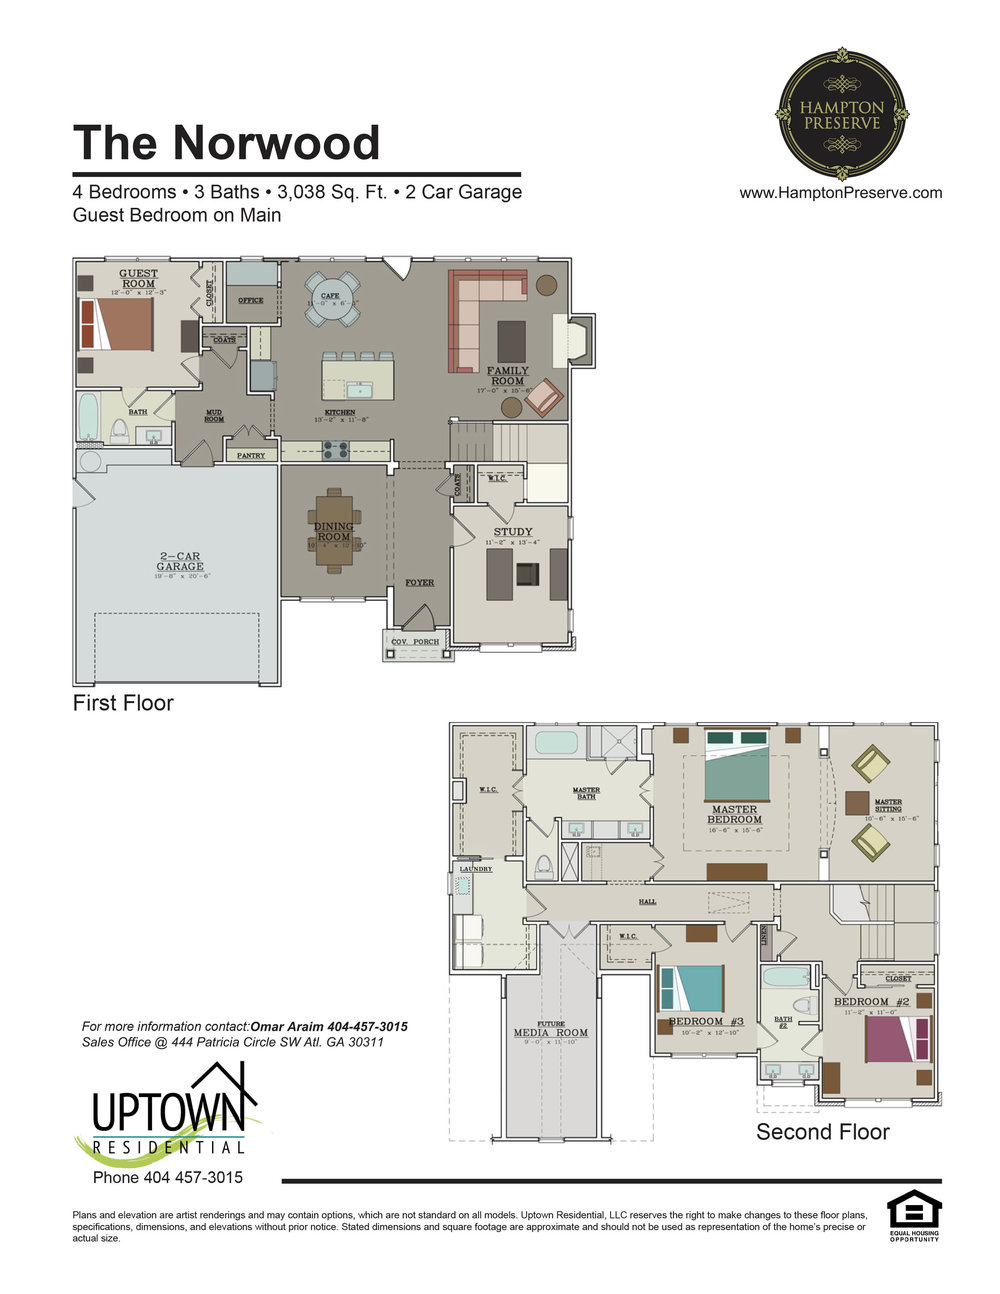 21669 Uptown Residential - Norwood 2.jpg